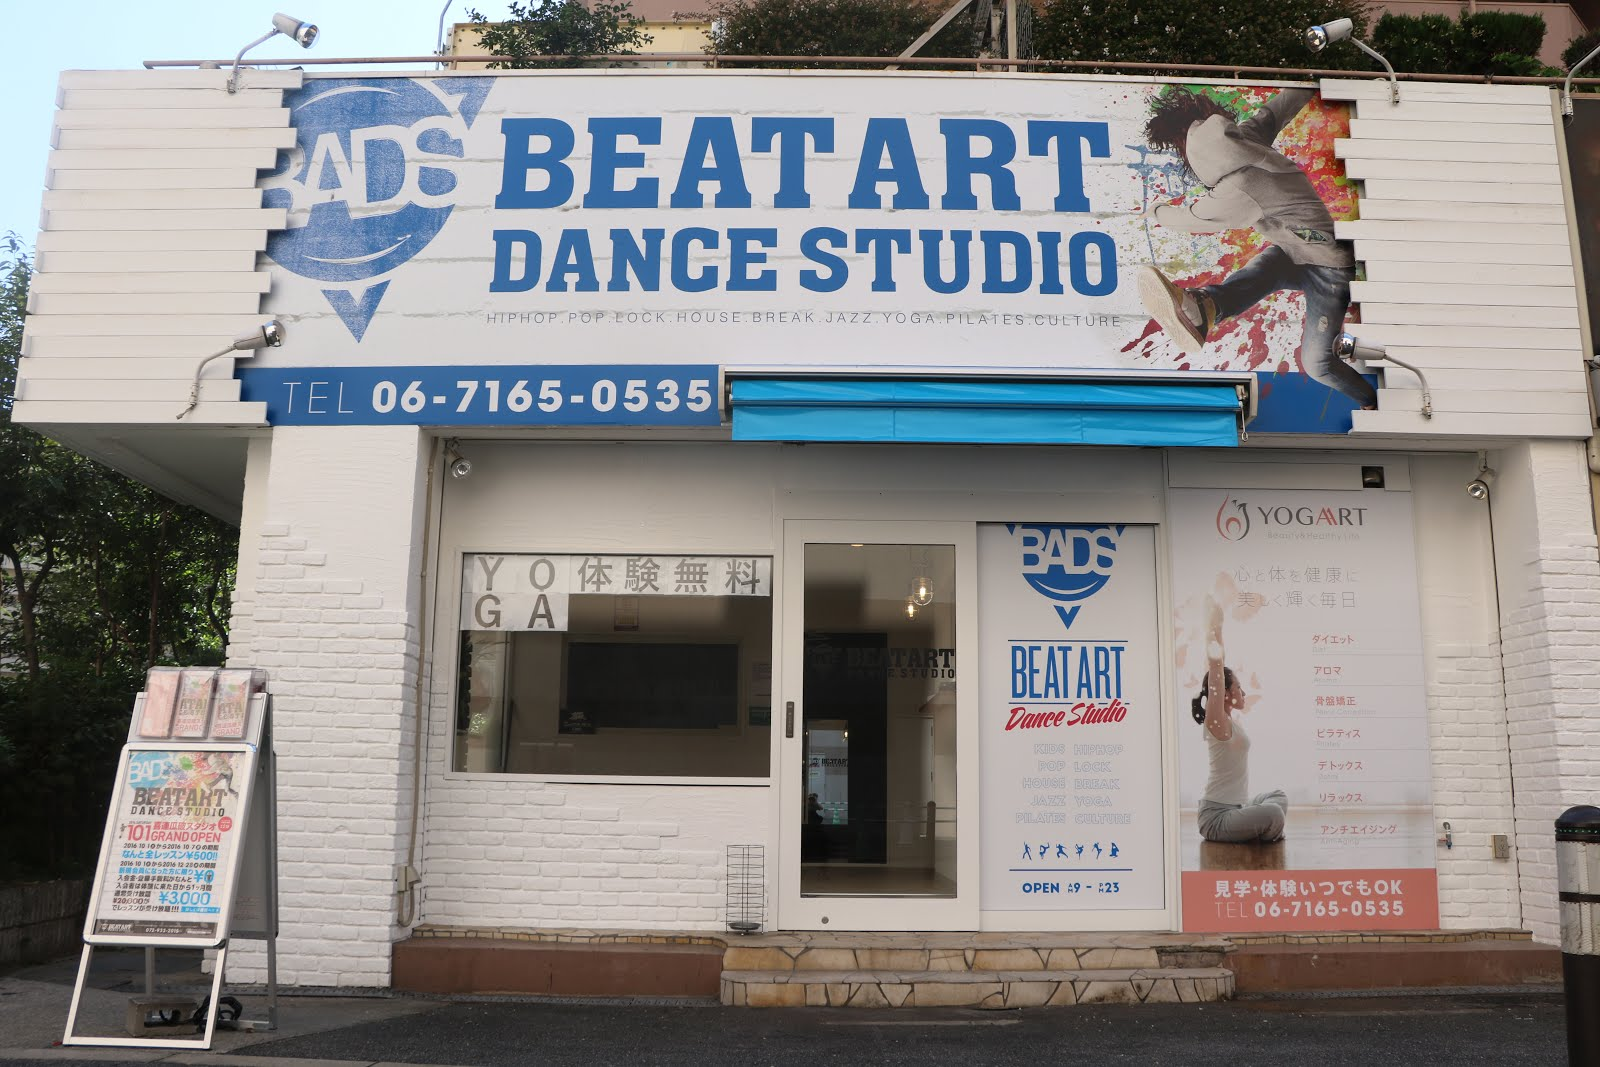 BEAT ART DANCE STUDIO